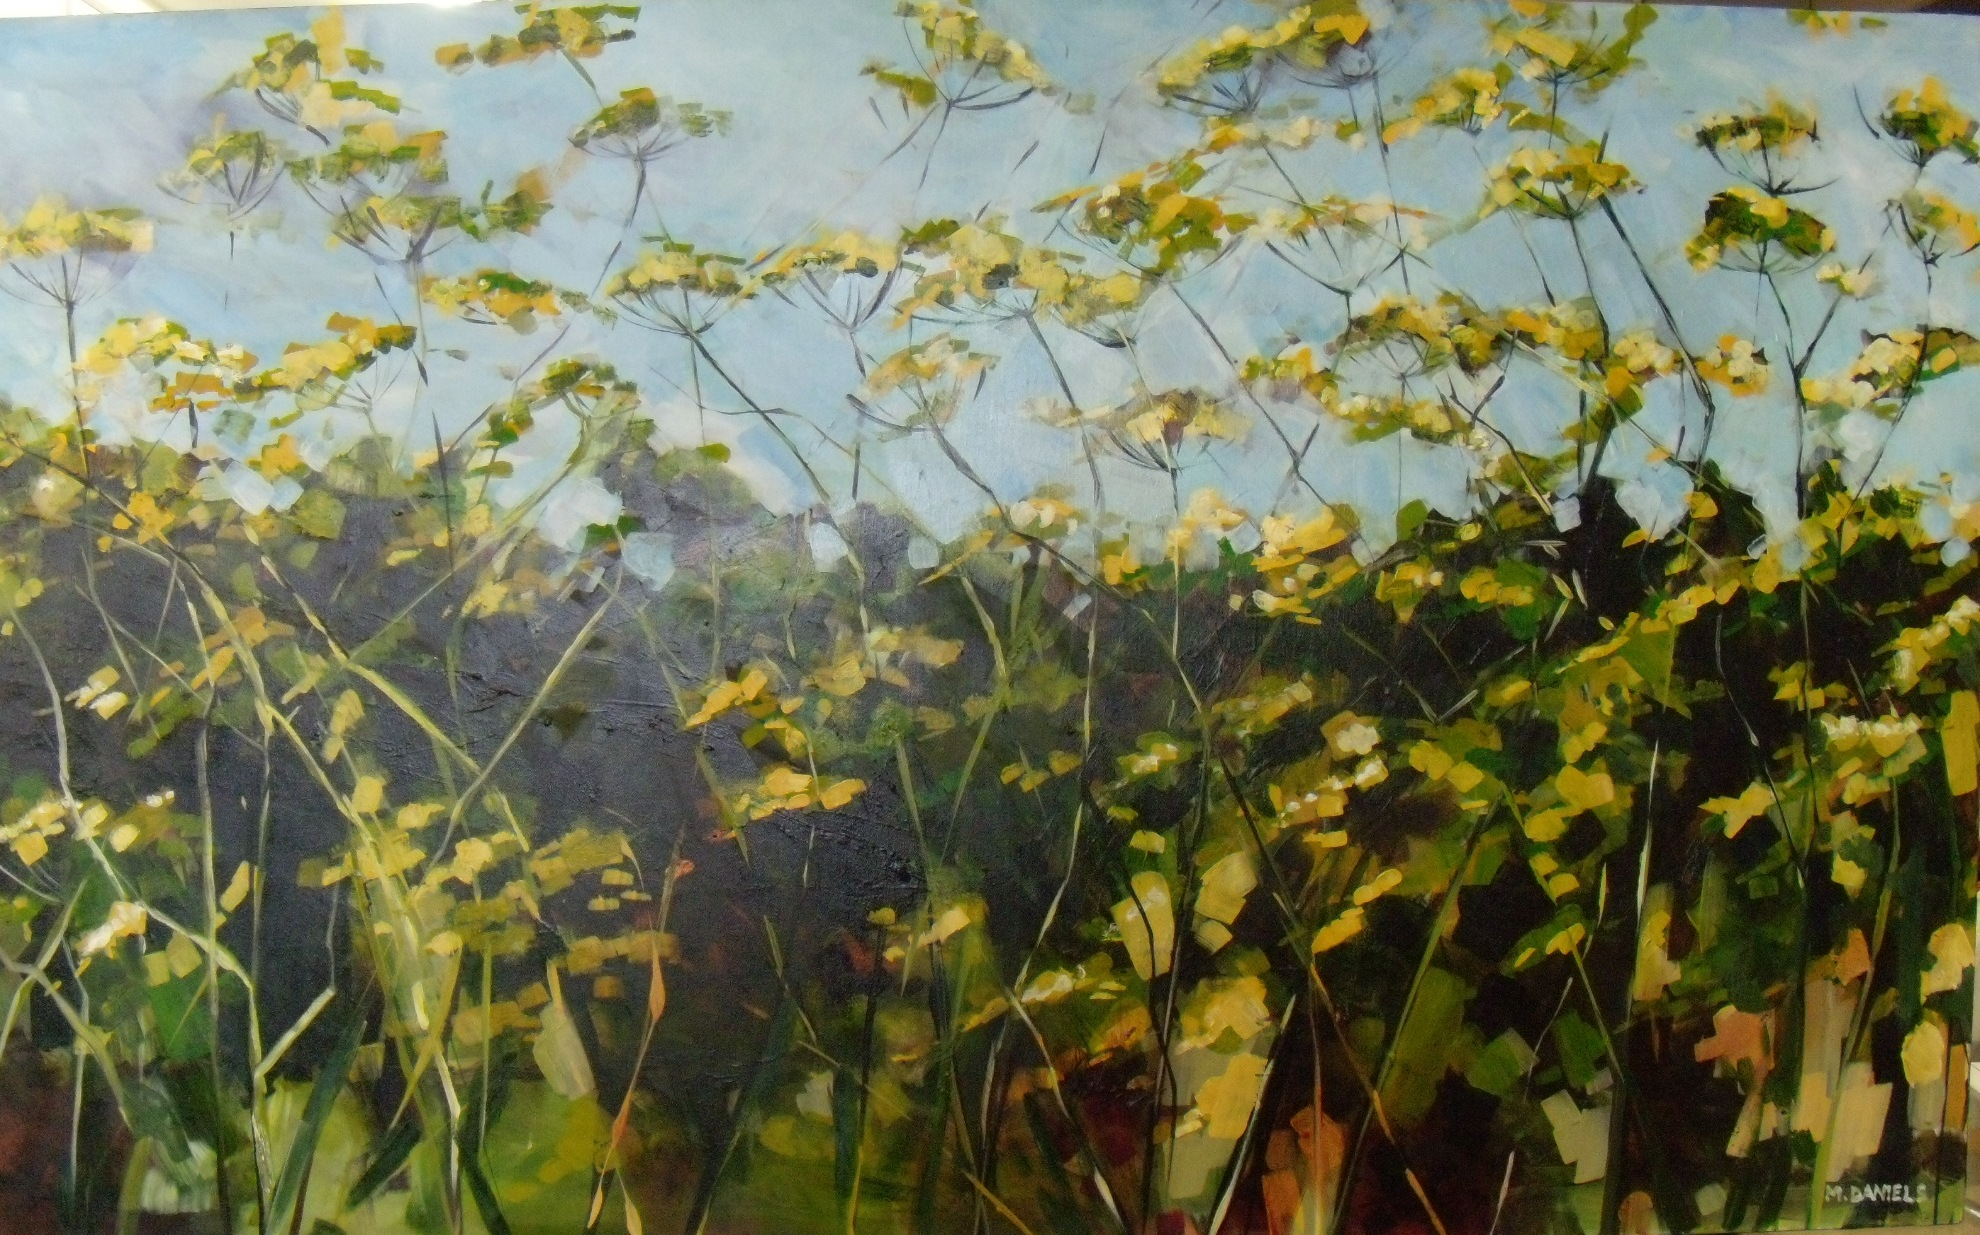 Fennel Flowers $3200 Measures 1530 mm w x 910 mm h